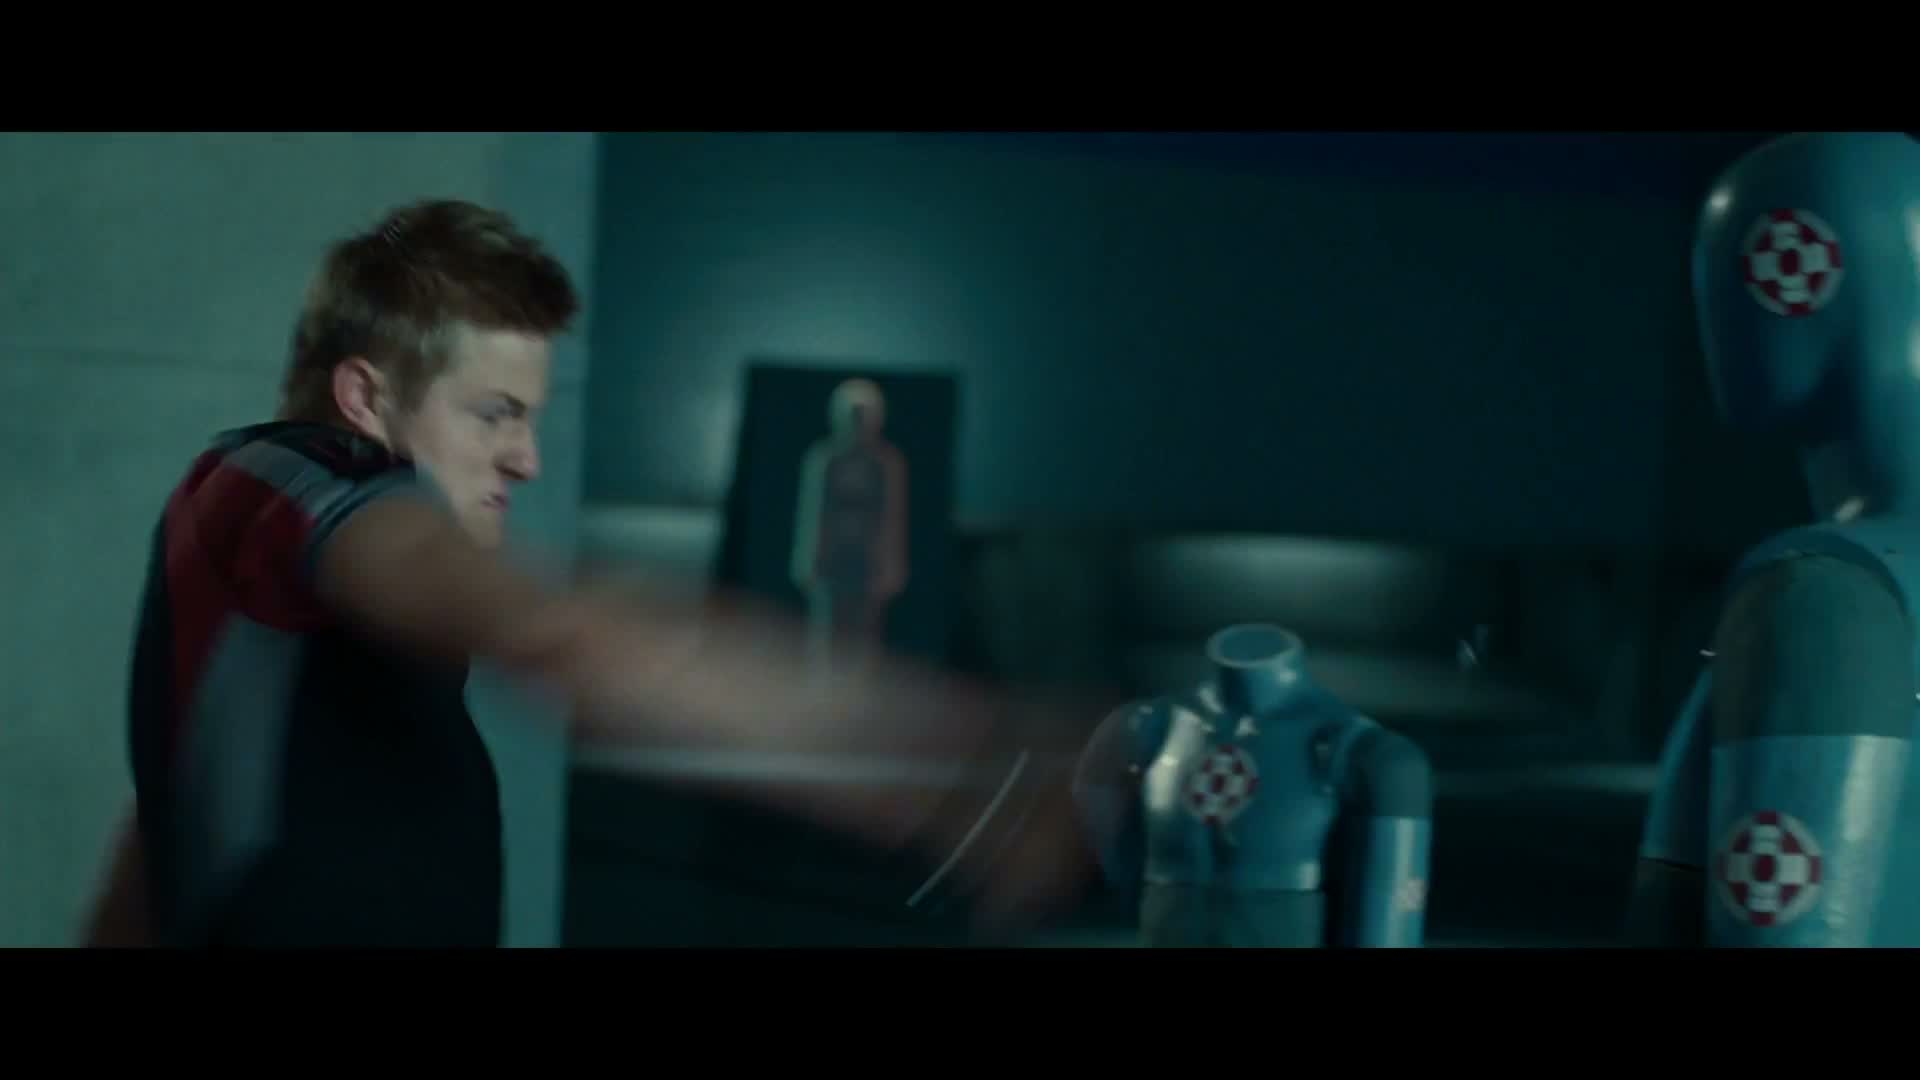 Cato images '-The Hunger Games'- trailer #2 HD wallpaper and ...